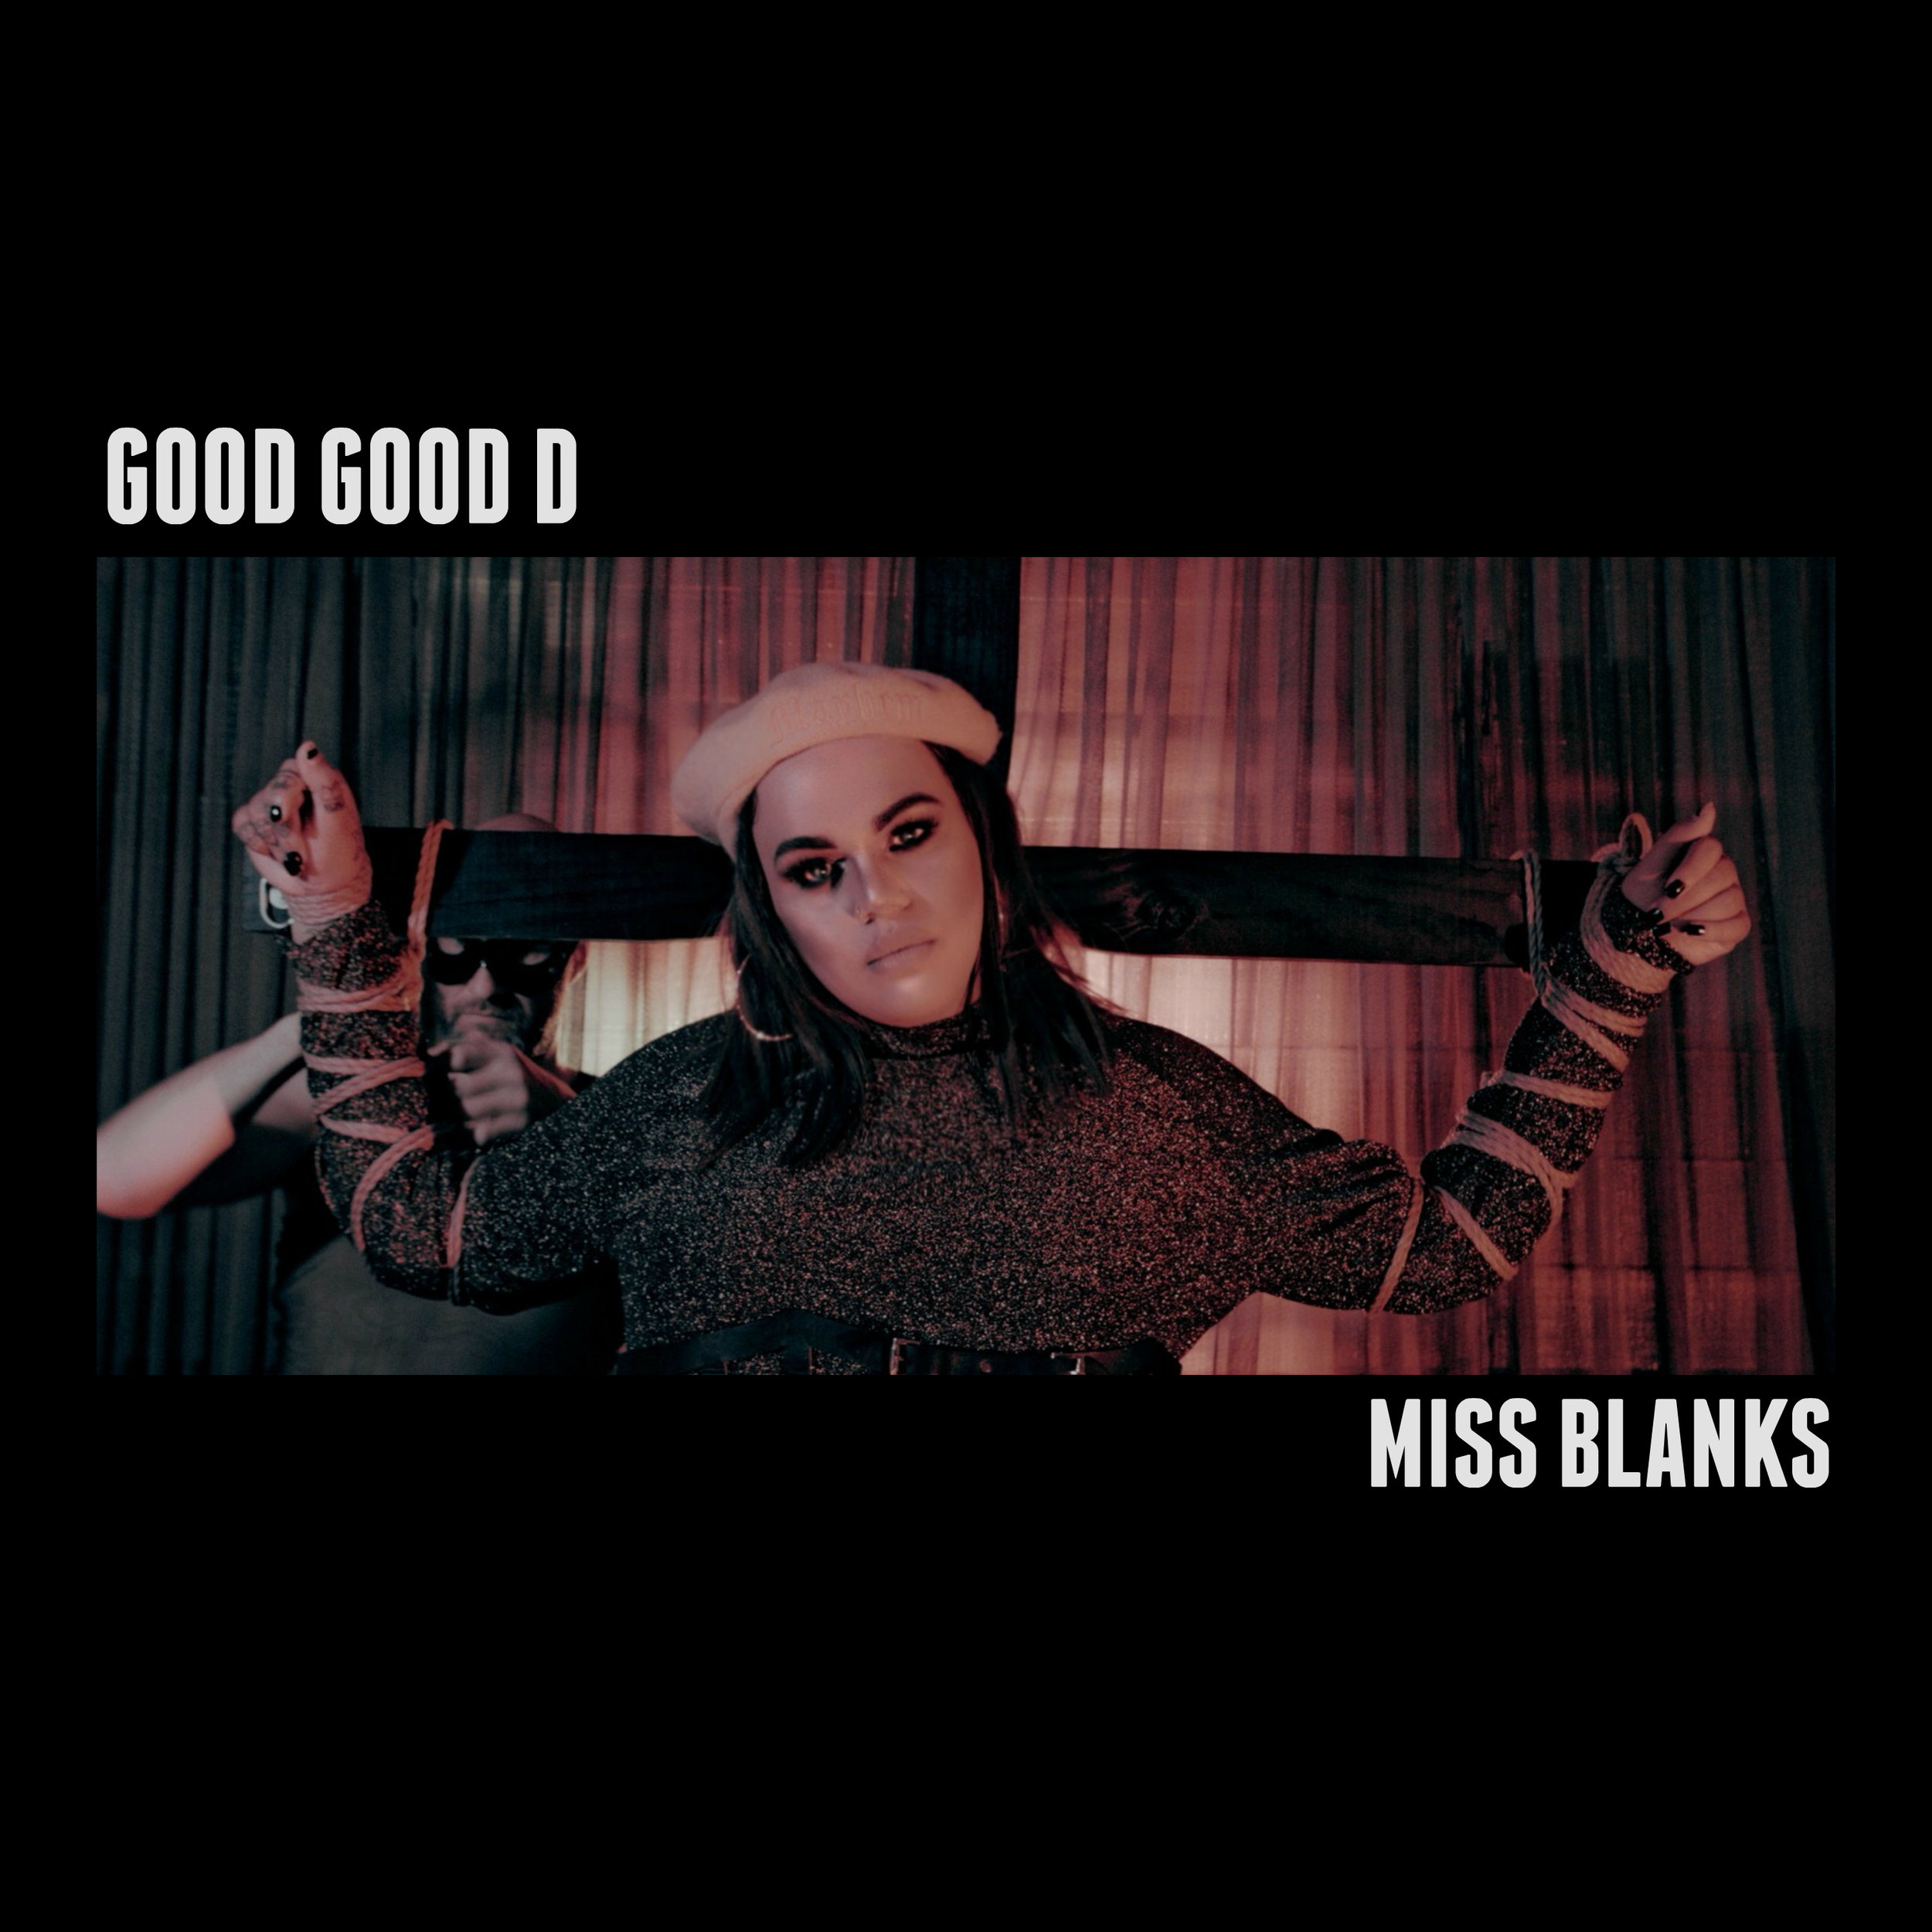 MISS BLANKS - GOOD GOOD D